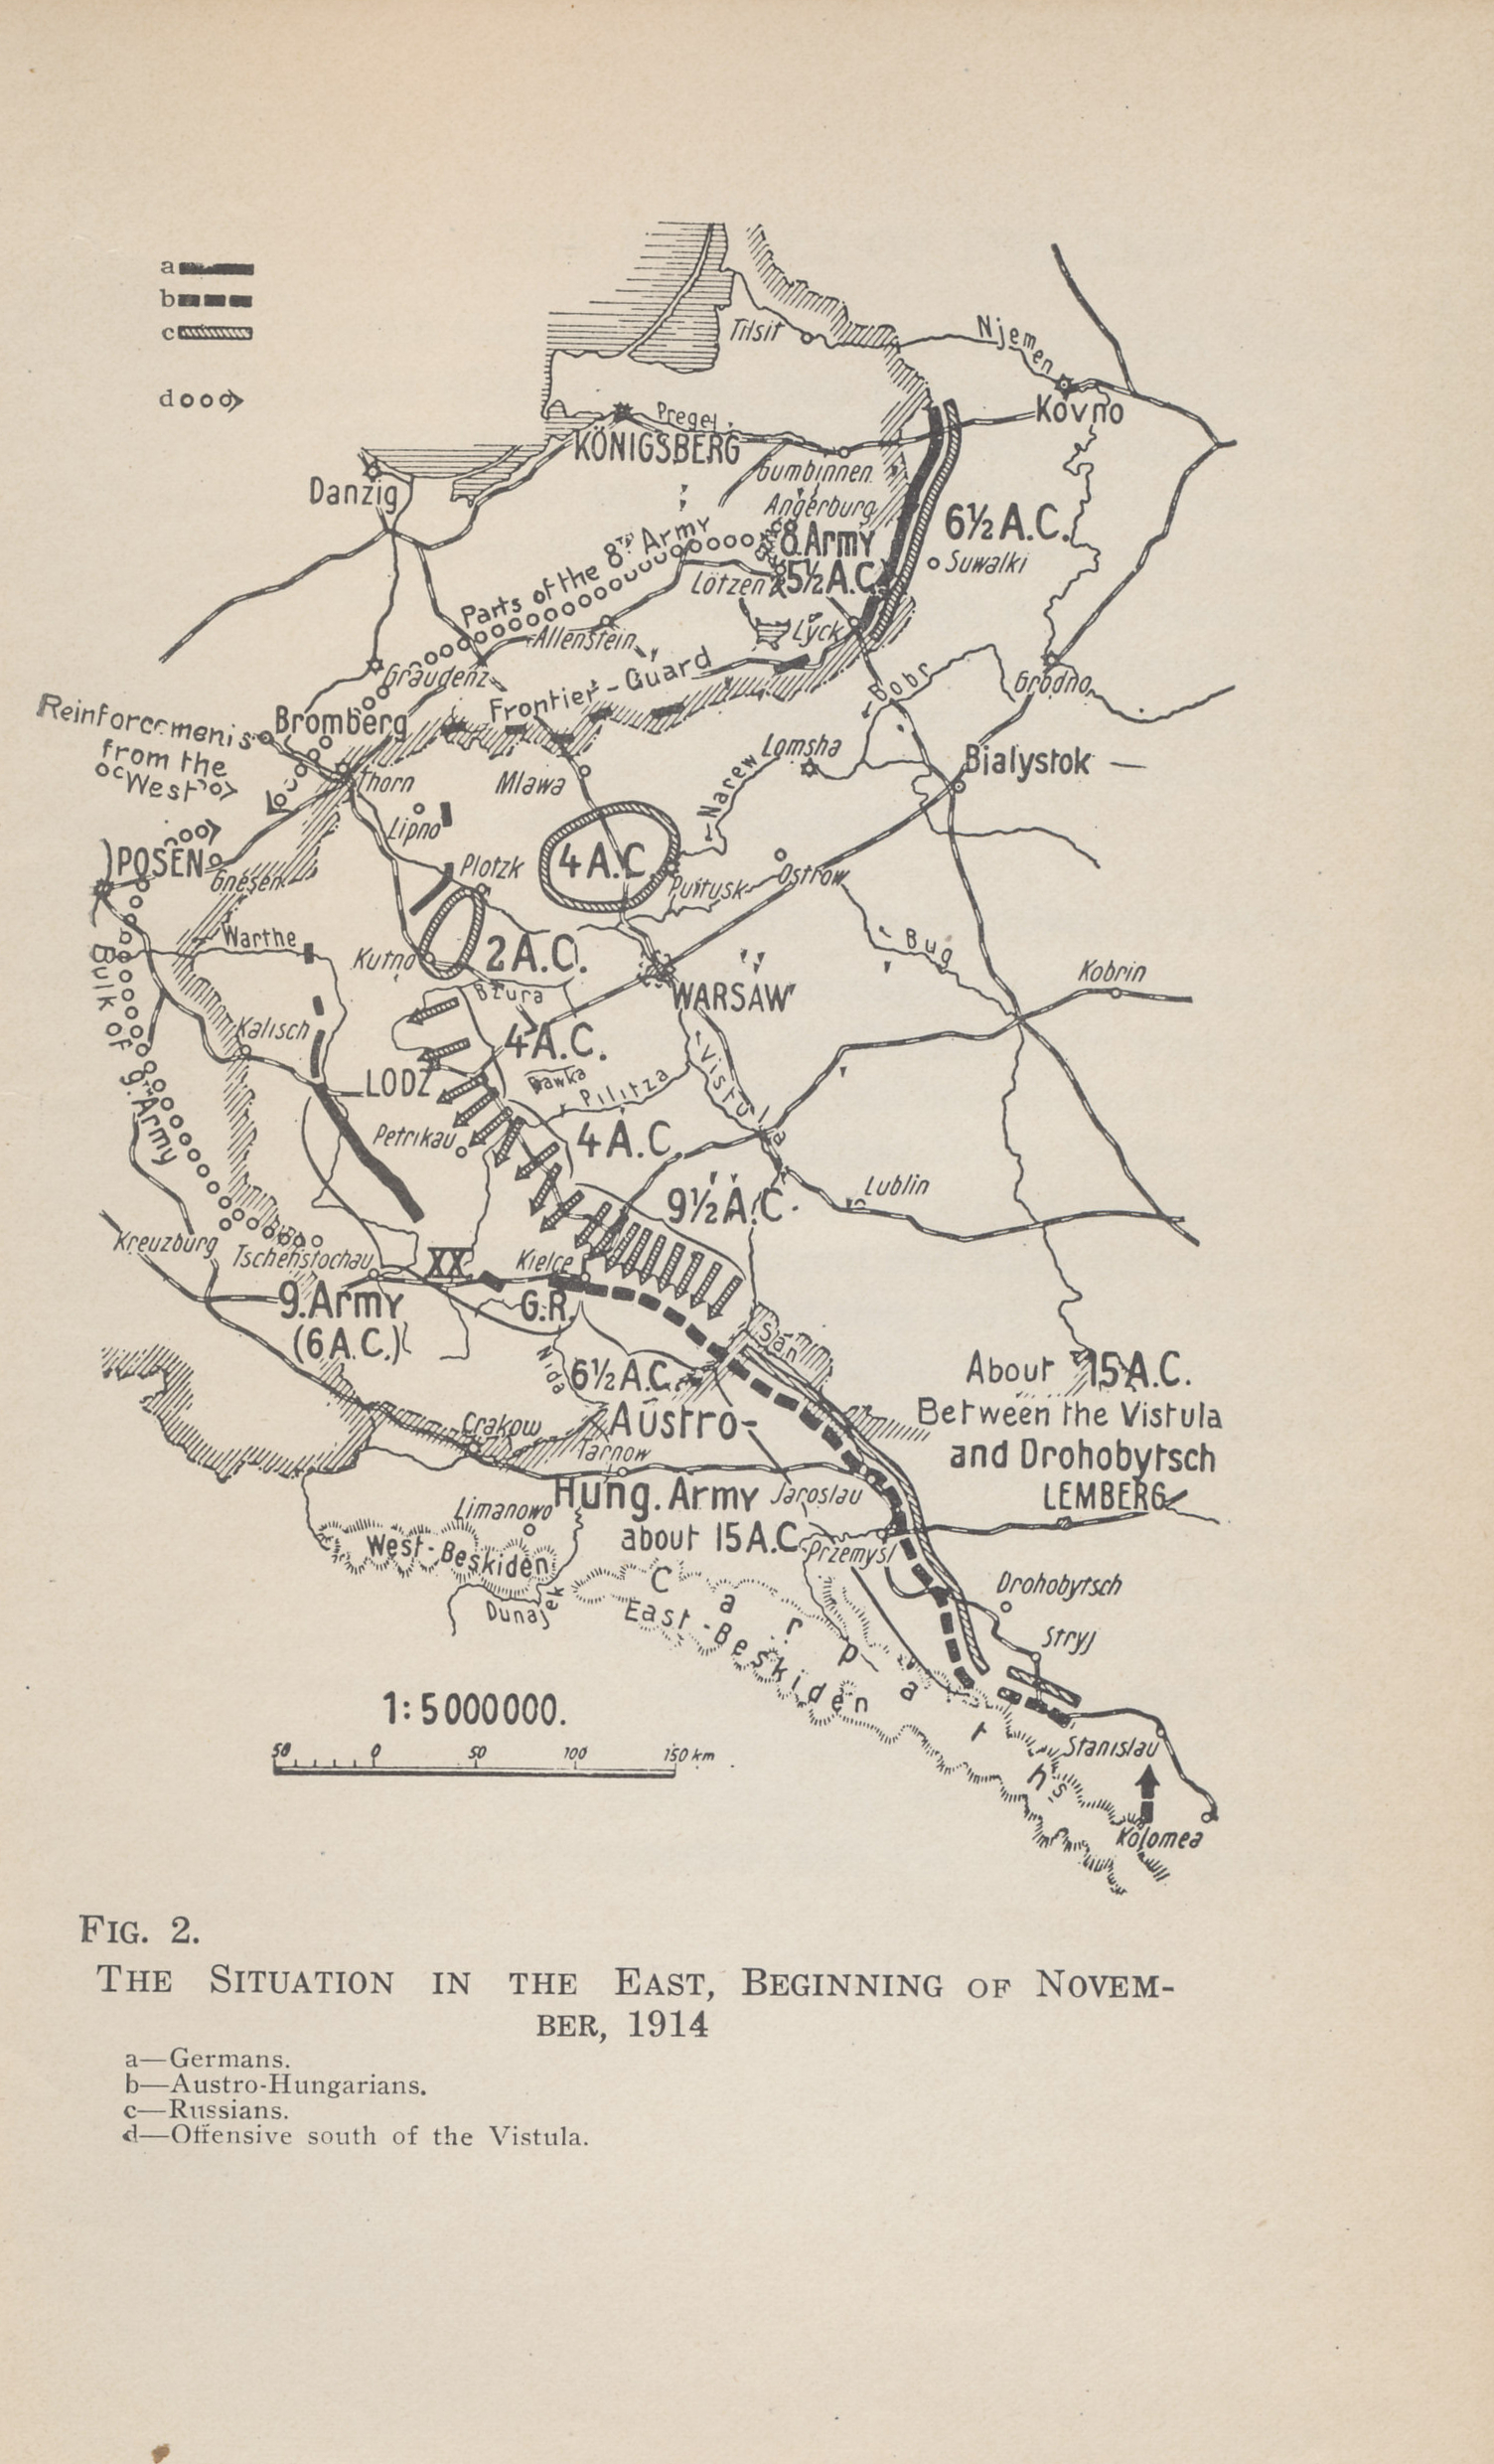 Map of the military situation and troop movements on the eastern front at the beginning of November, 1914. A German-Austro-Hungarian advance almost to the gates of Warsaw in September and October, 1914, was reversed by the Russians. The November 12 German counter-attack included the new German Ninth Army and reinforcements that had been withdrawn from the Western Front. Map from The German General Staff and its Decisions, 1914-1916 by General von Falkenhayn.